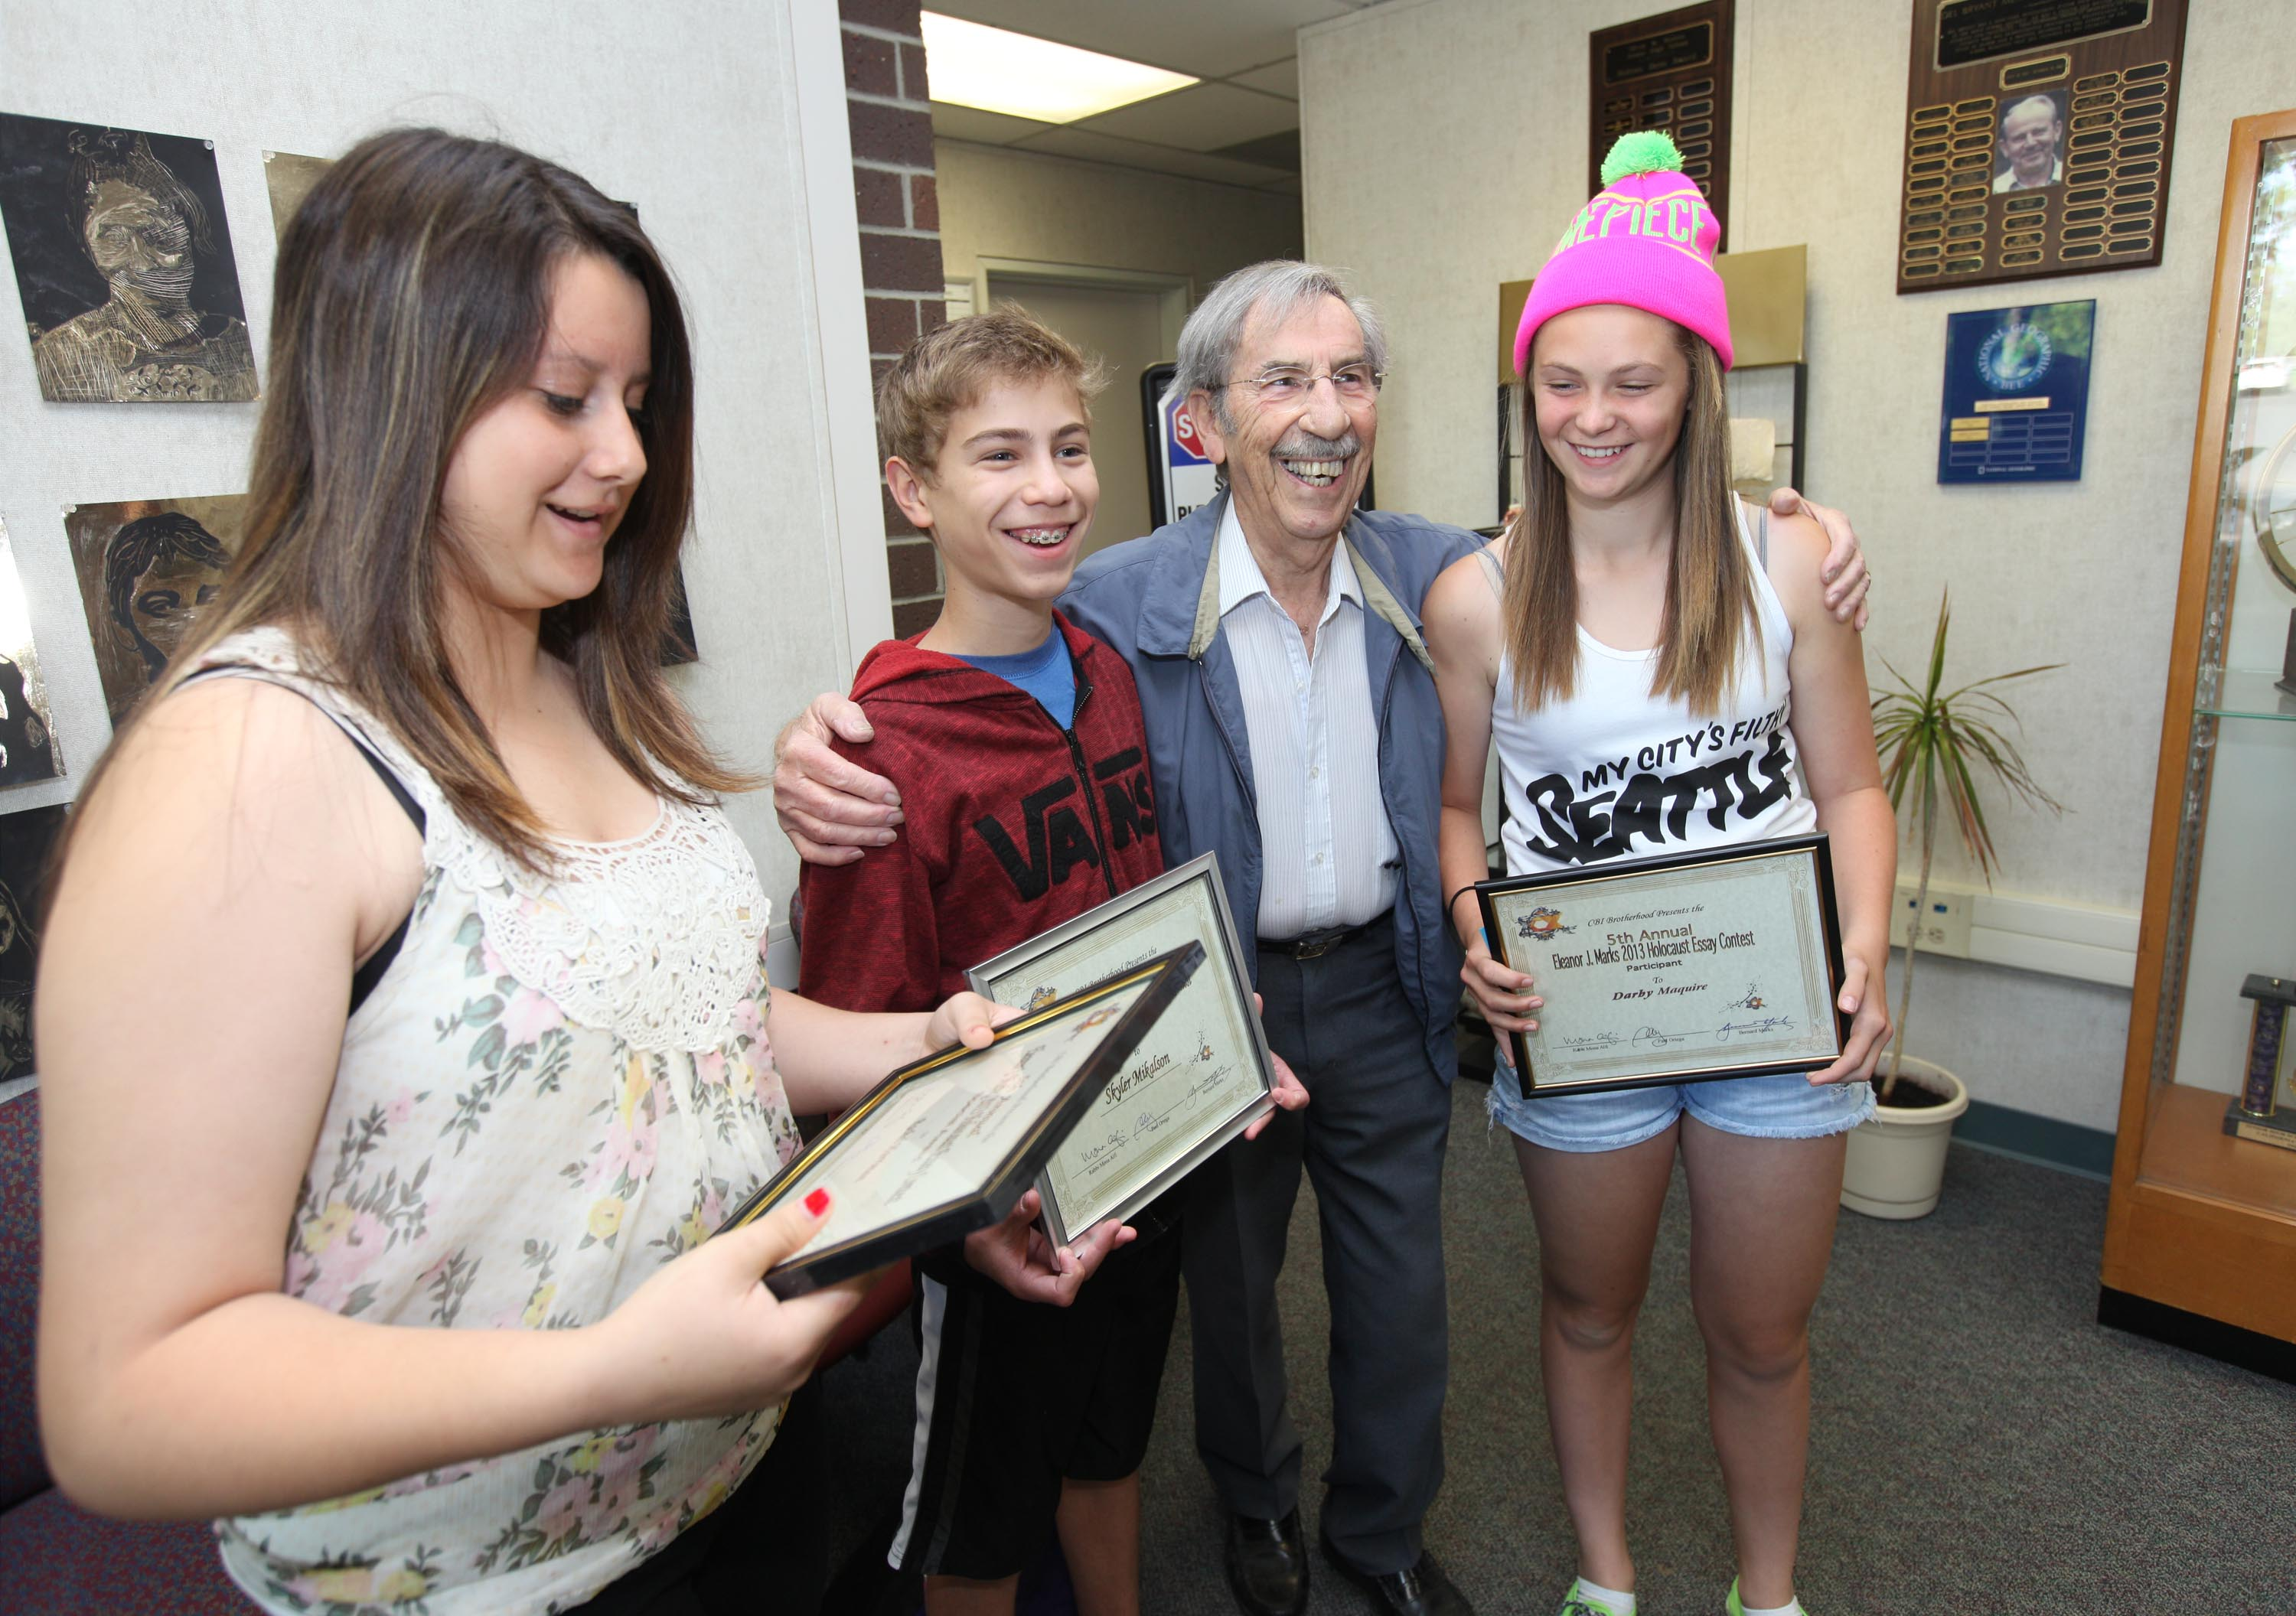 holmes students honored for holocaust essays holocaust survivor bernard marks of sacramento congratulates three holmes junior high school students for their winning essays in a contest he established